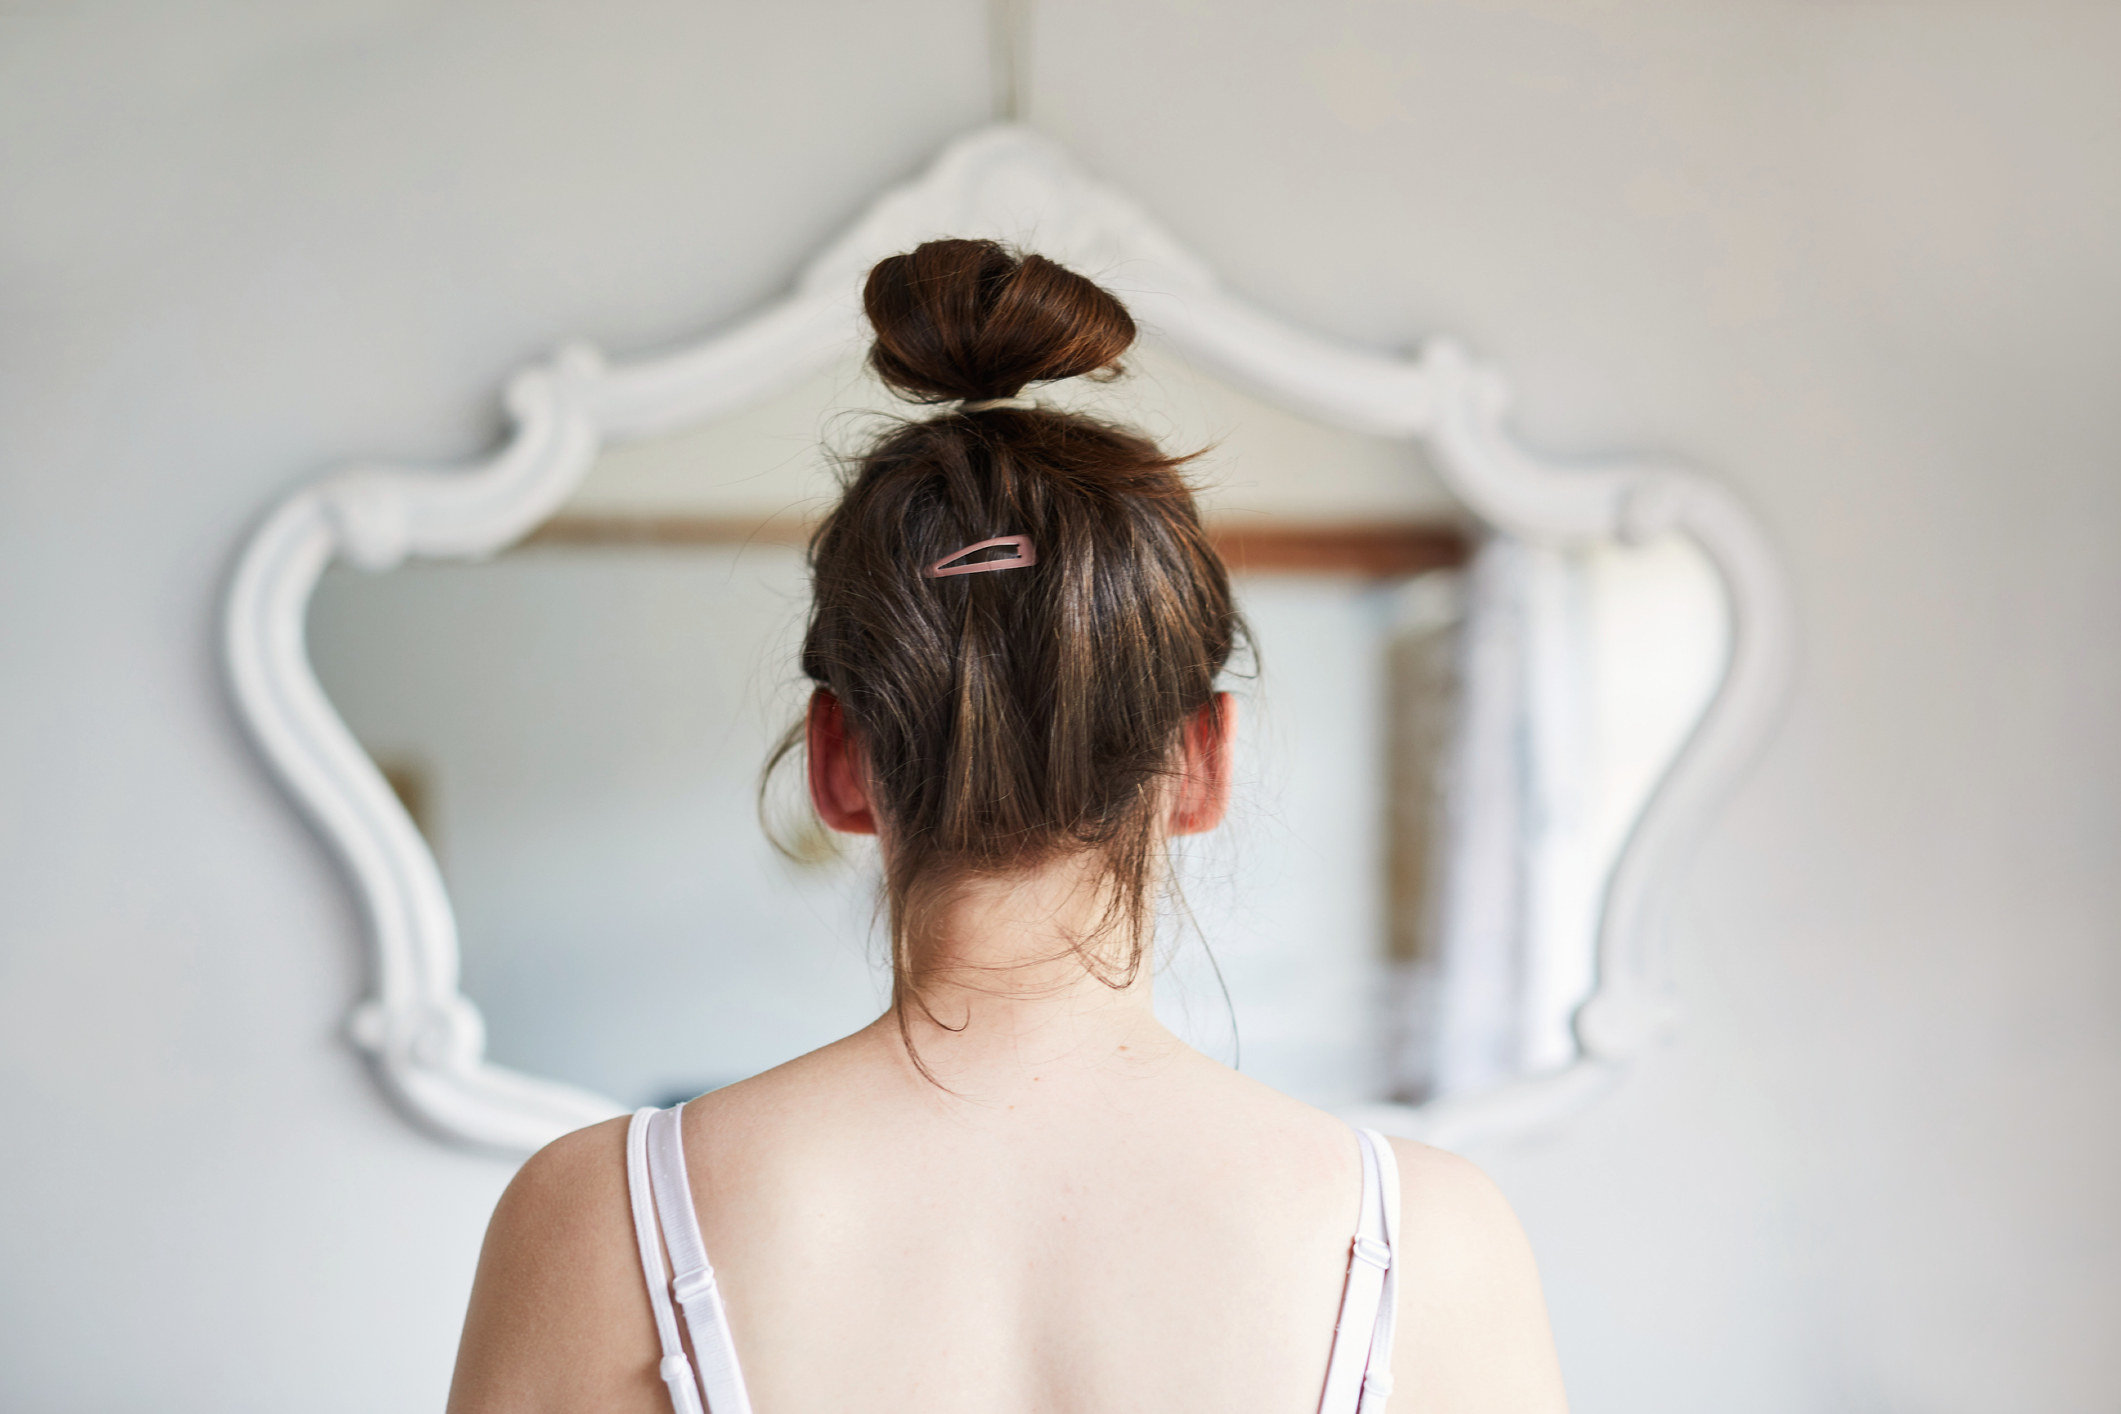 View from behind of a Woman looking her reflection in the mirror